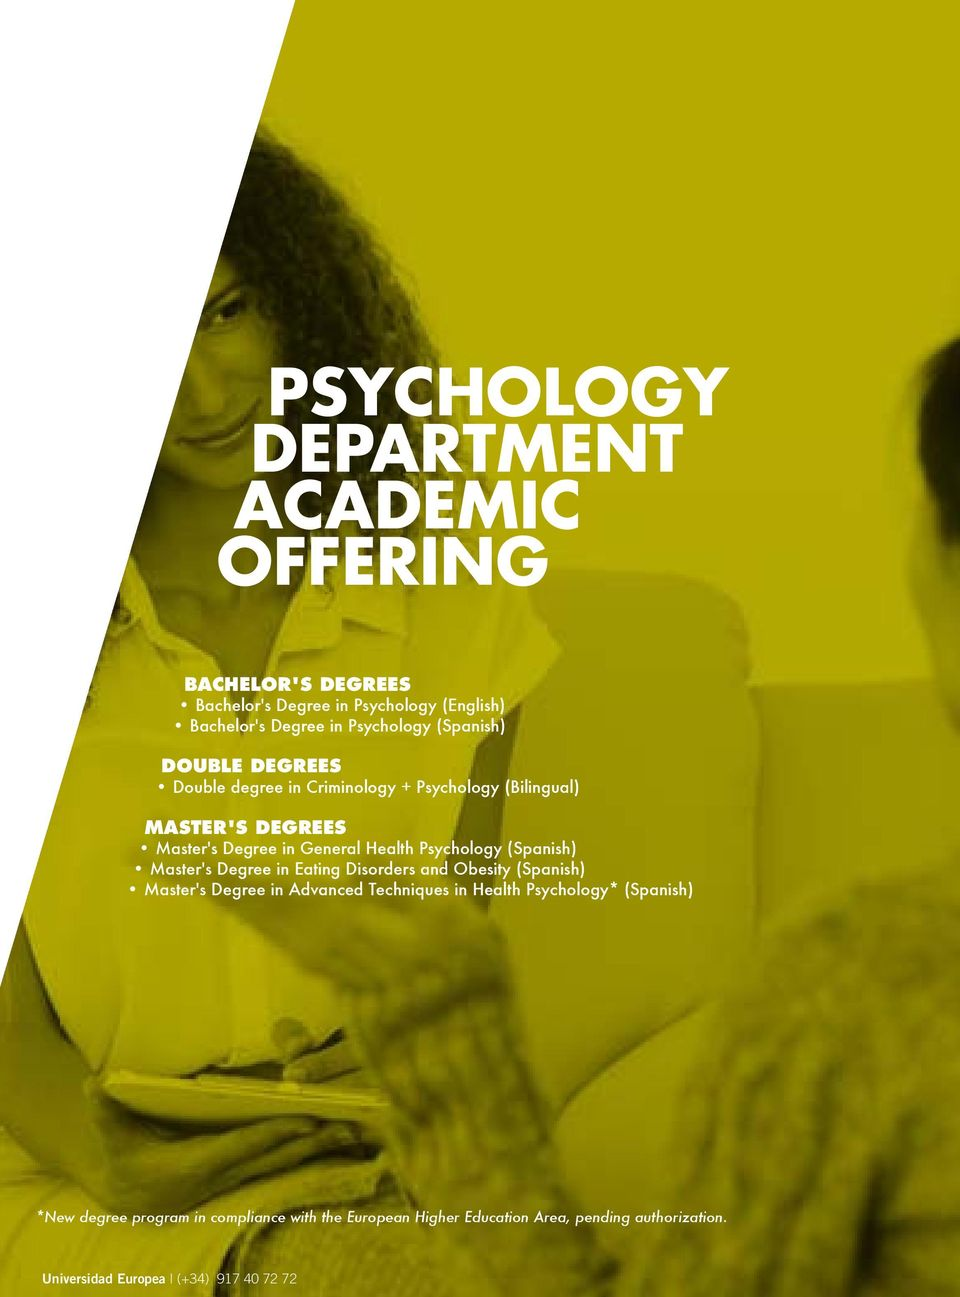 General Health Psychology (Spanish) Master's Degree in Eating Disorders and Obesity (Spanish) Master's Degree in Advanced